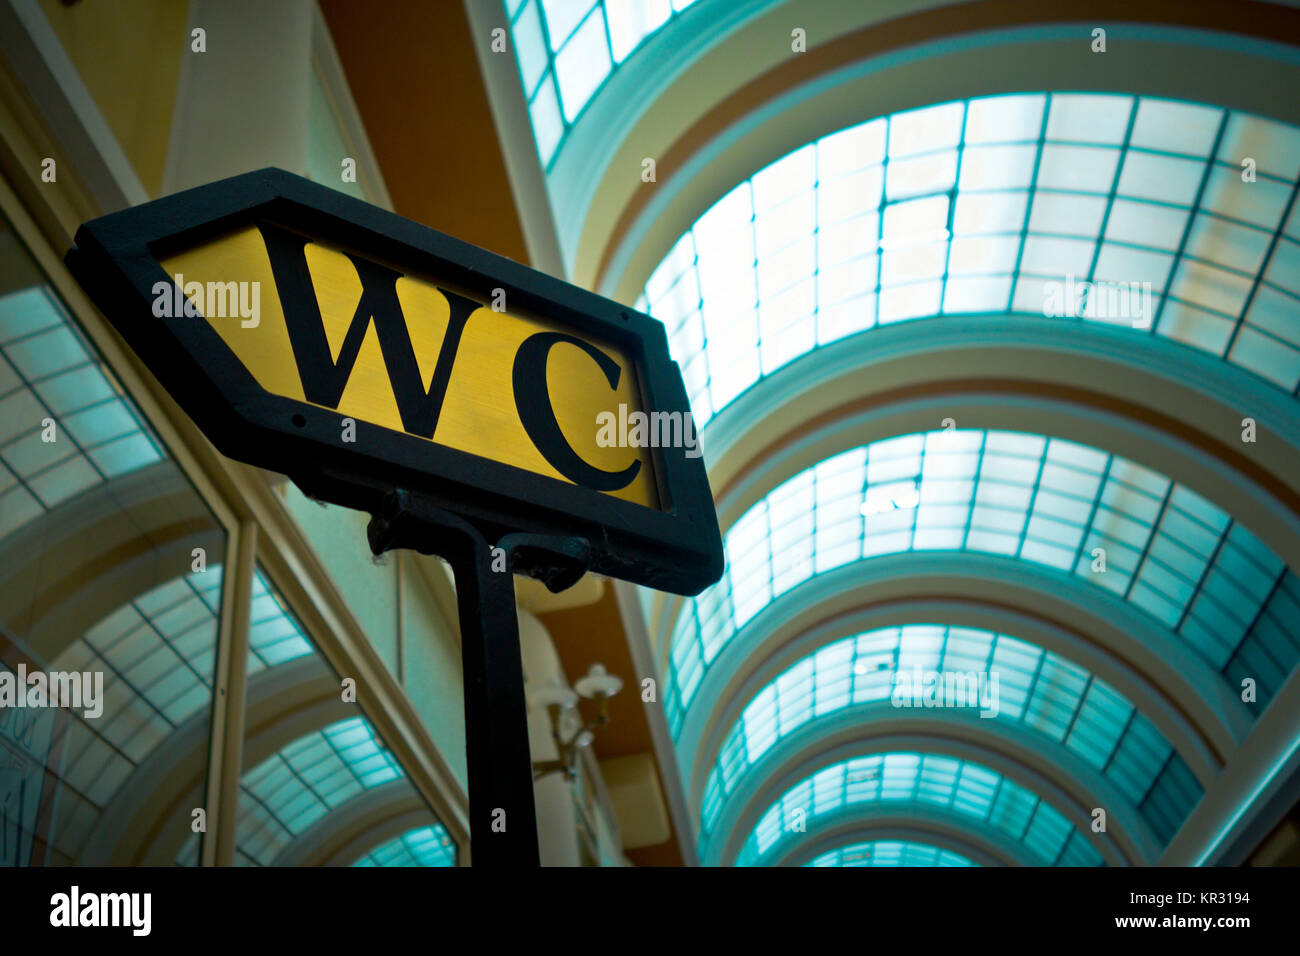 WC sign indication in a gallery - Stock Image